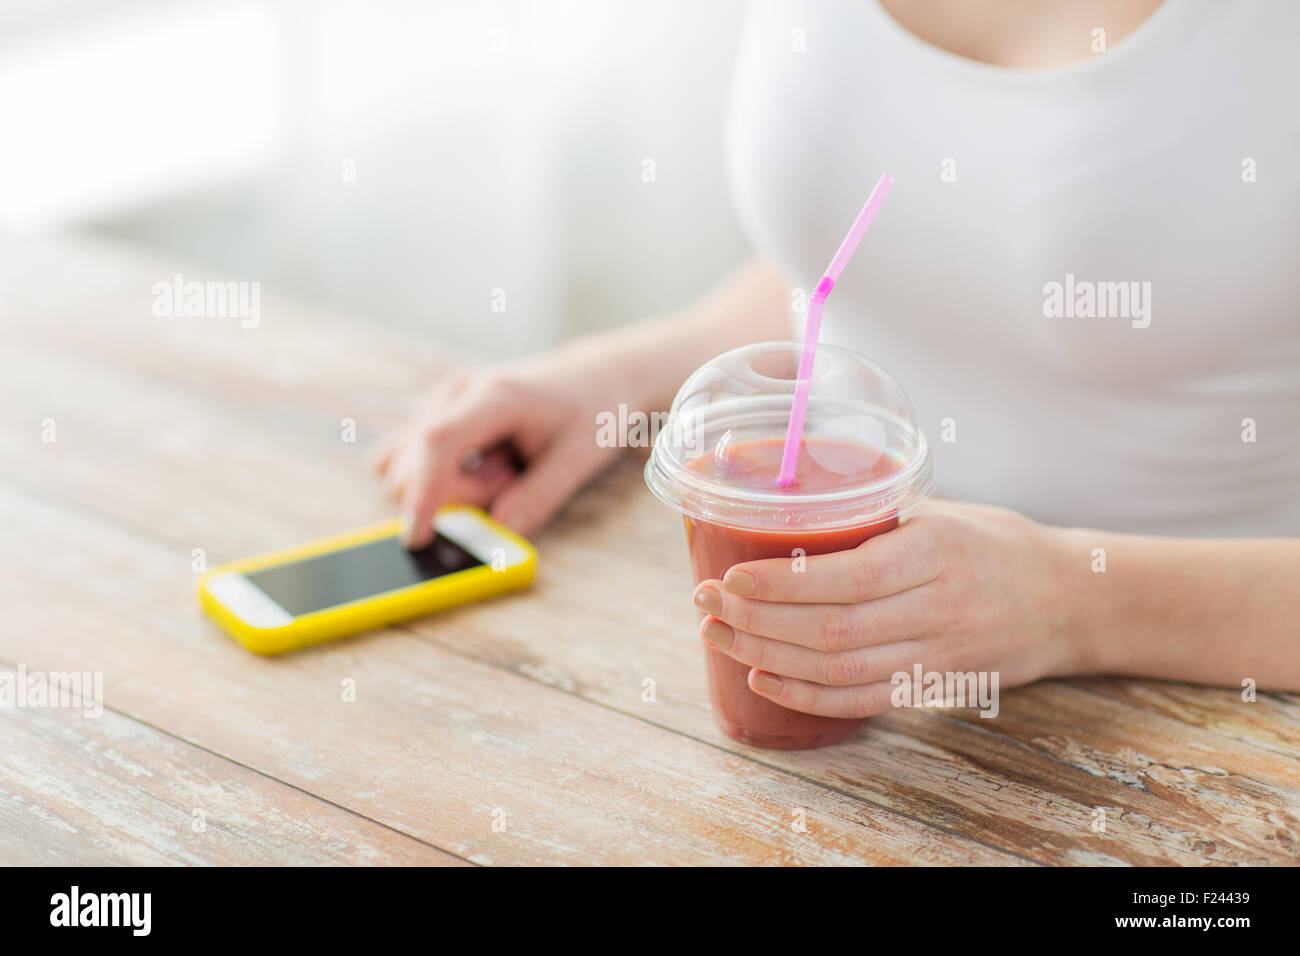 close up of woman with smartphone and smoothie - Stock Image